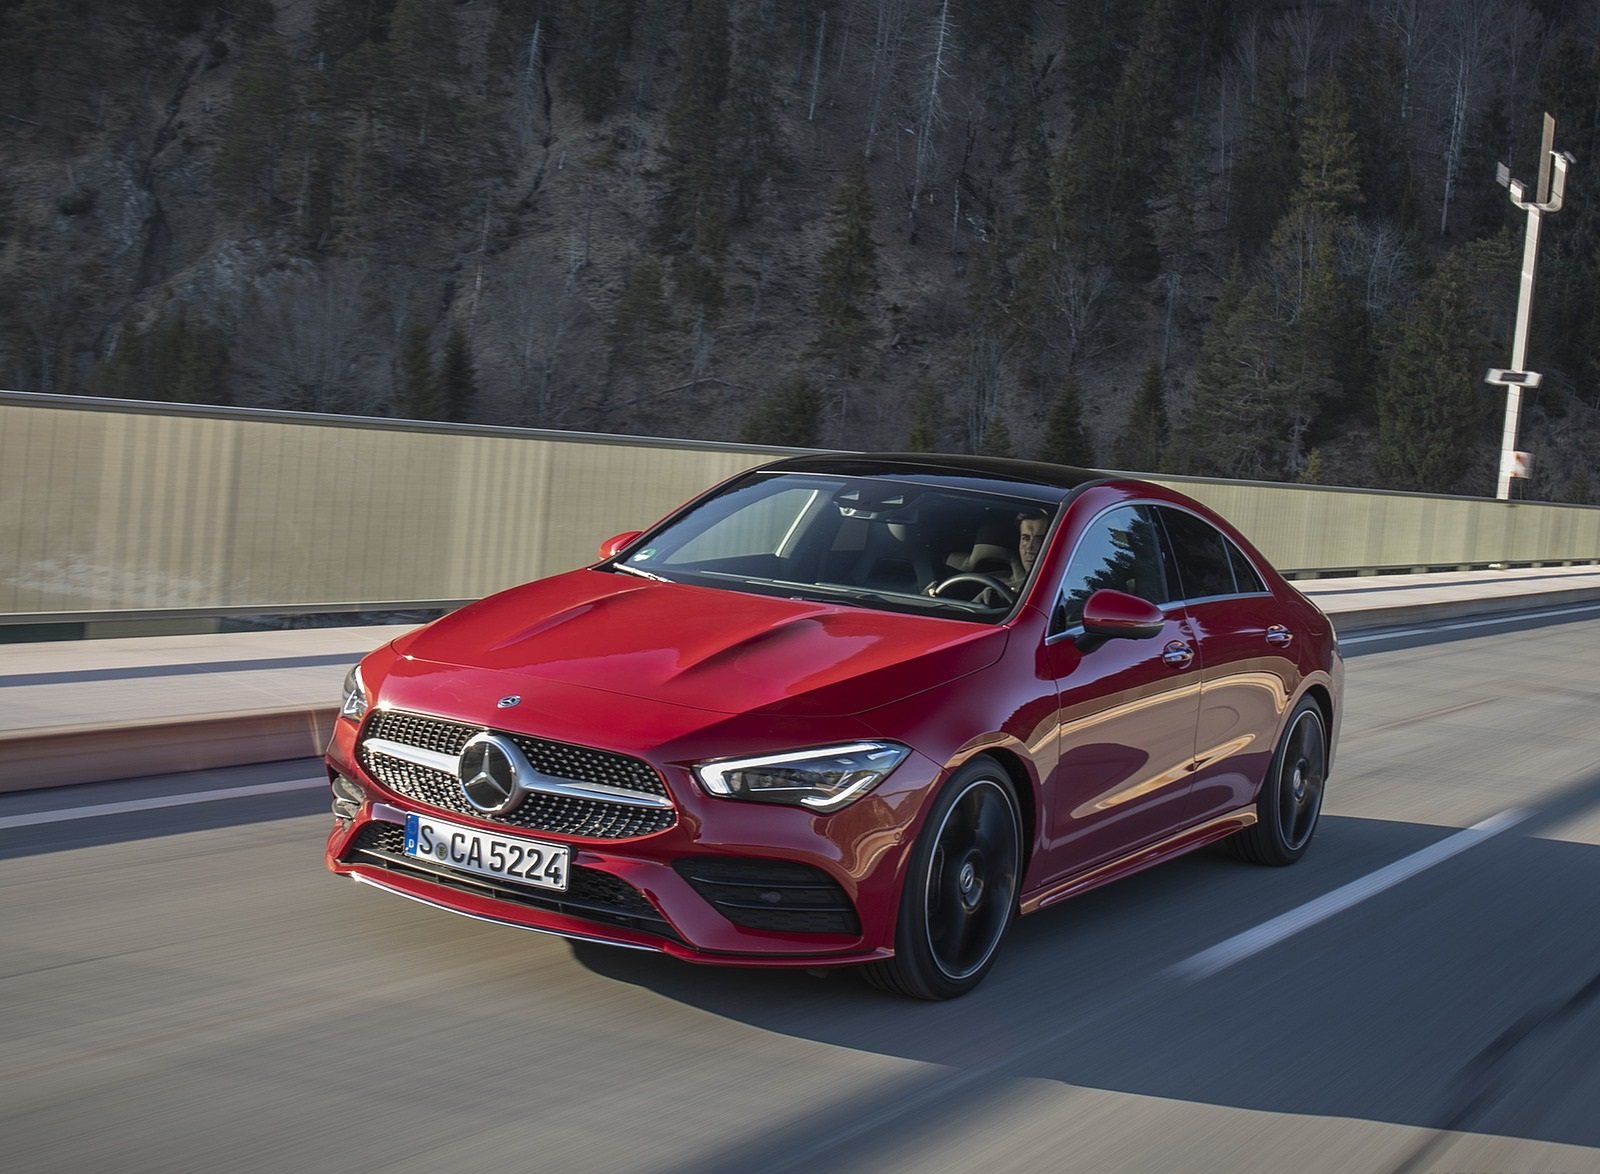 2020 Mercedes-Benz CLA 250 4MATIC Coupe AMG Line (Color: Jupiter Red) Front Three-Quarter Wallpapers (2)